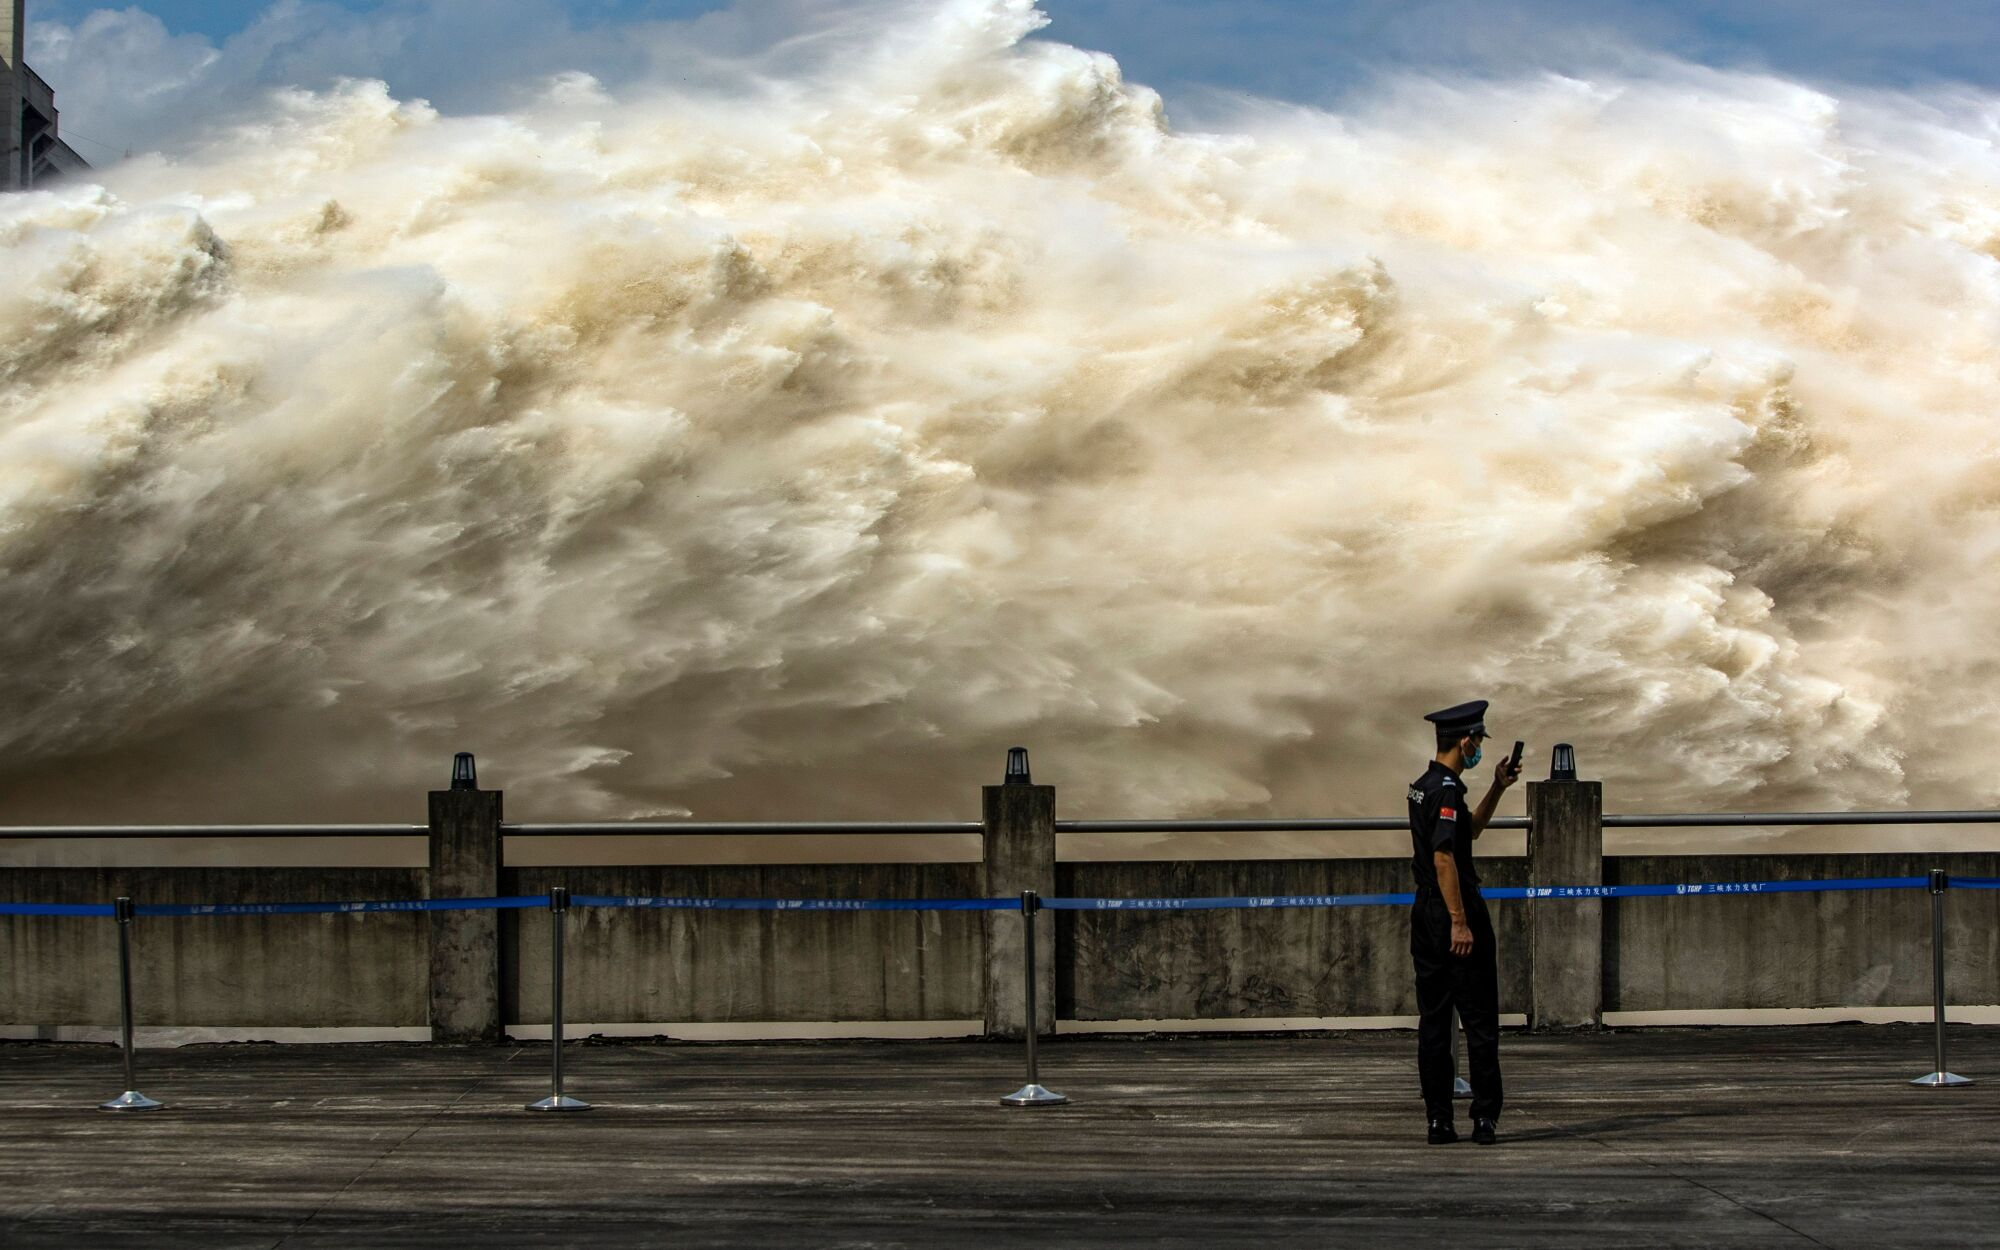 A security guard looks at his smartphone while water is released from Three Gorges Dam in central China.